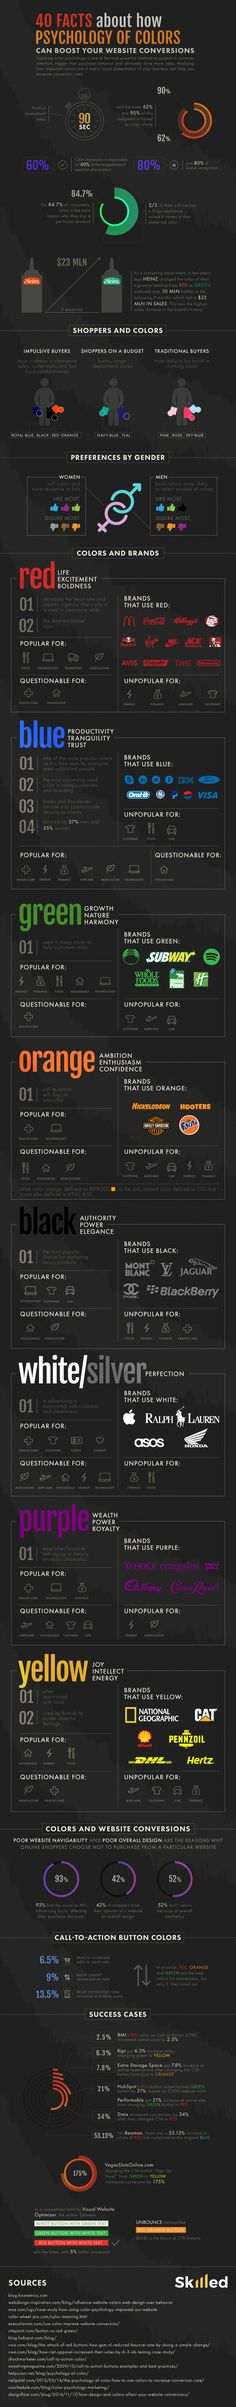 40 Facts About How Psychology of Colors Can Boost Your Website Conversions - #infographic